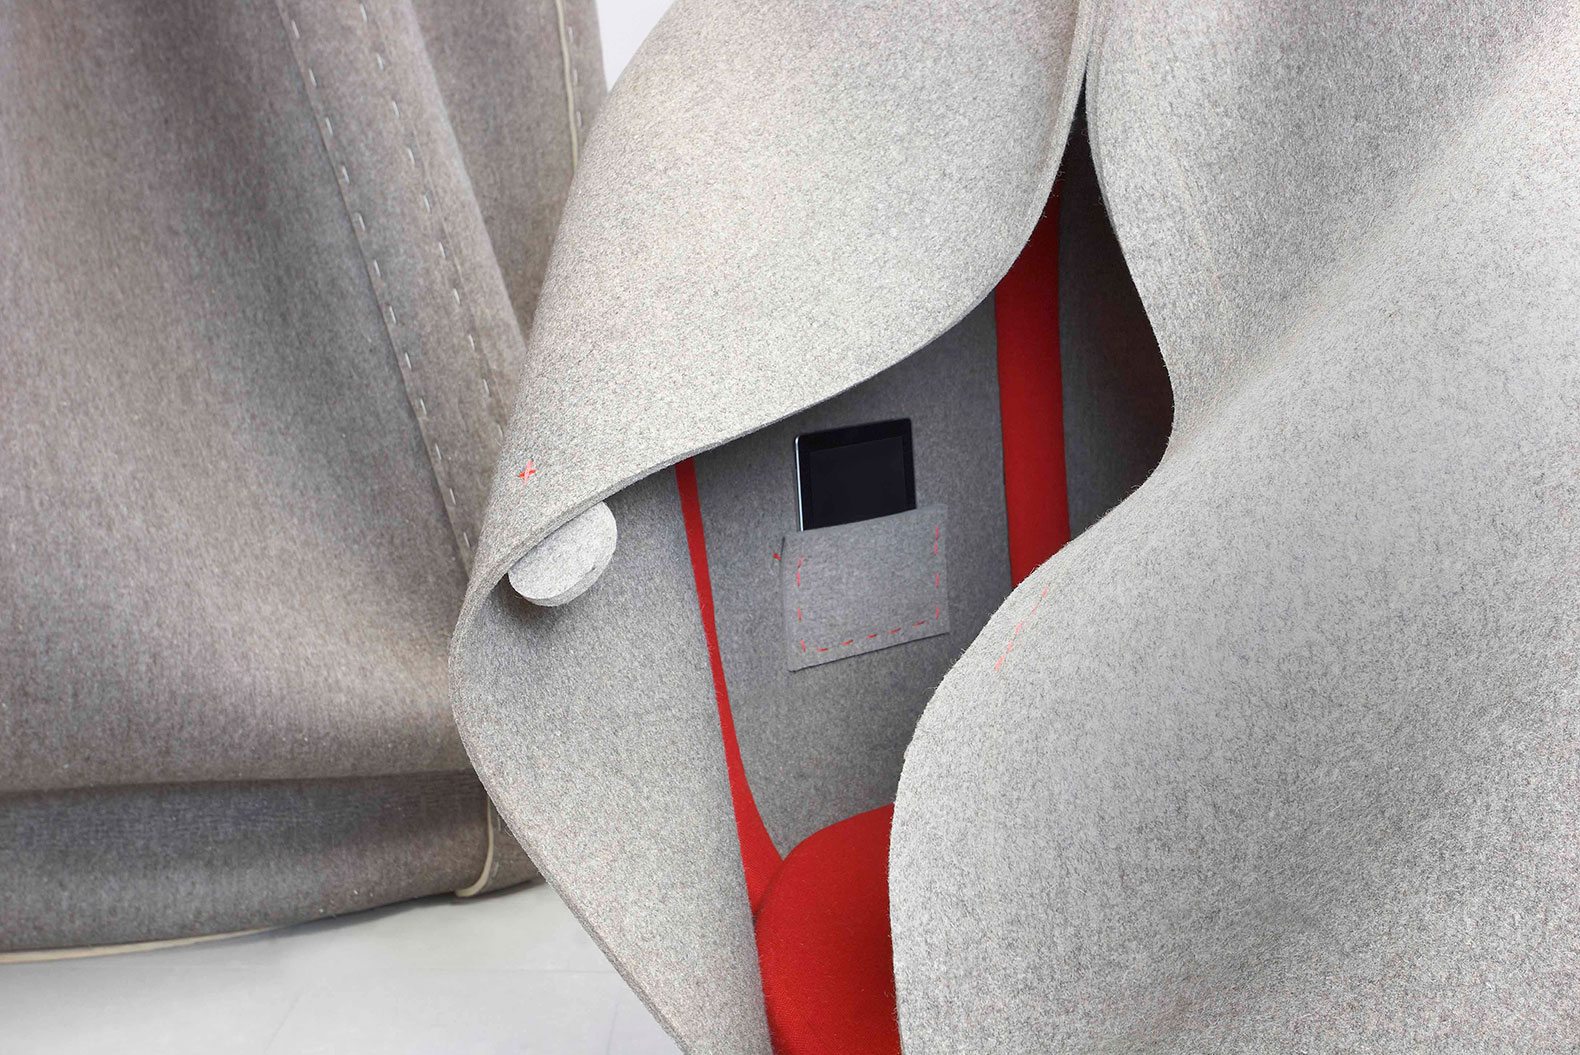 Freyja Sewell, Felt Cocoon, Sensory Concentration Space, cozy cocoon, reconnect with senses, LED lights, biodegradable felt, British design, modern urban life space